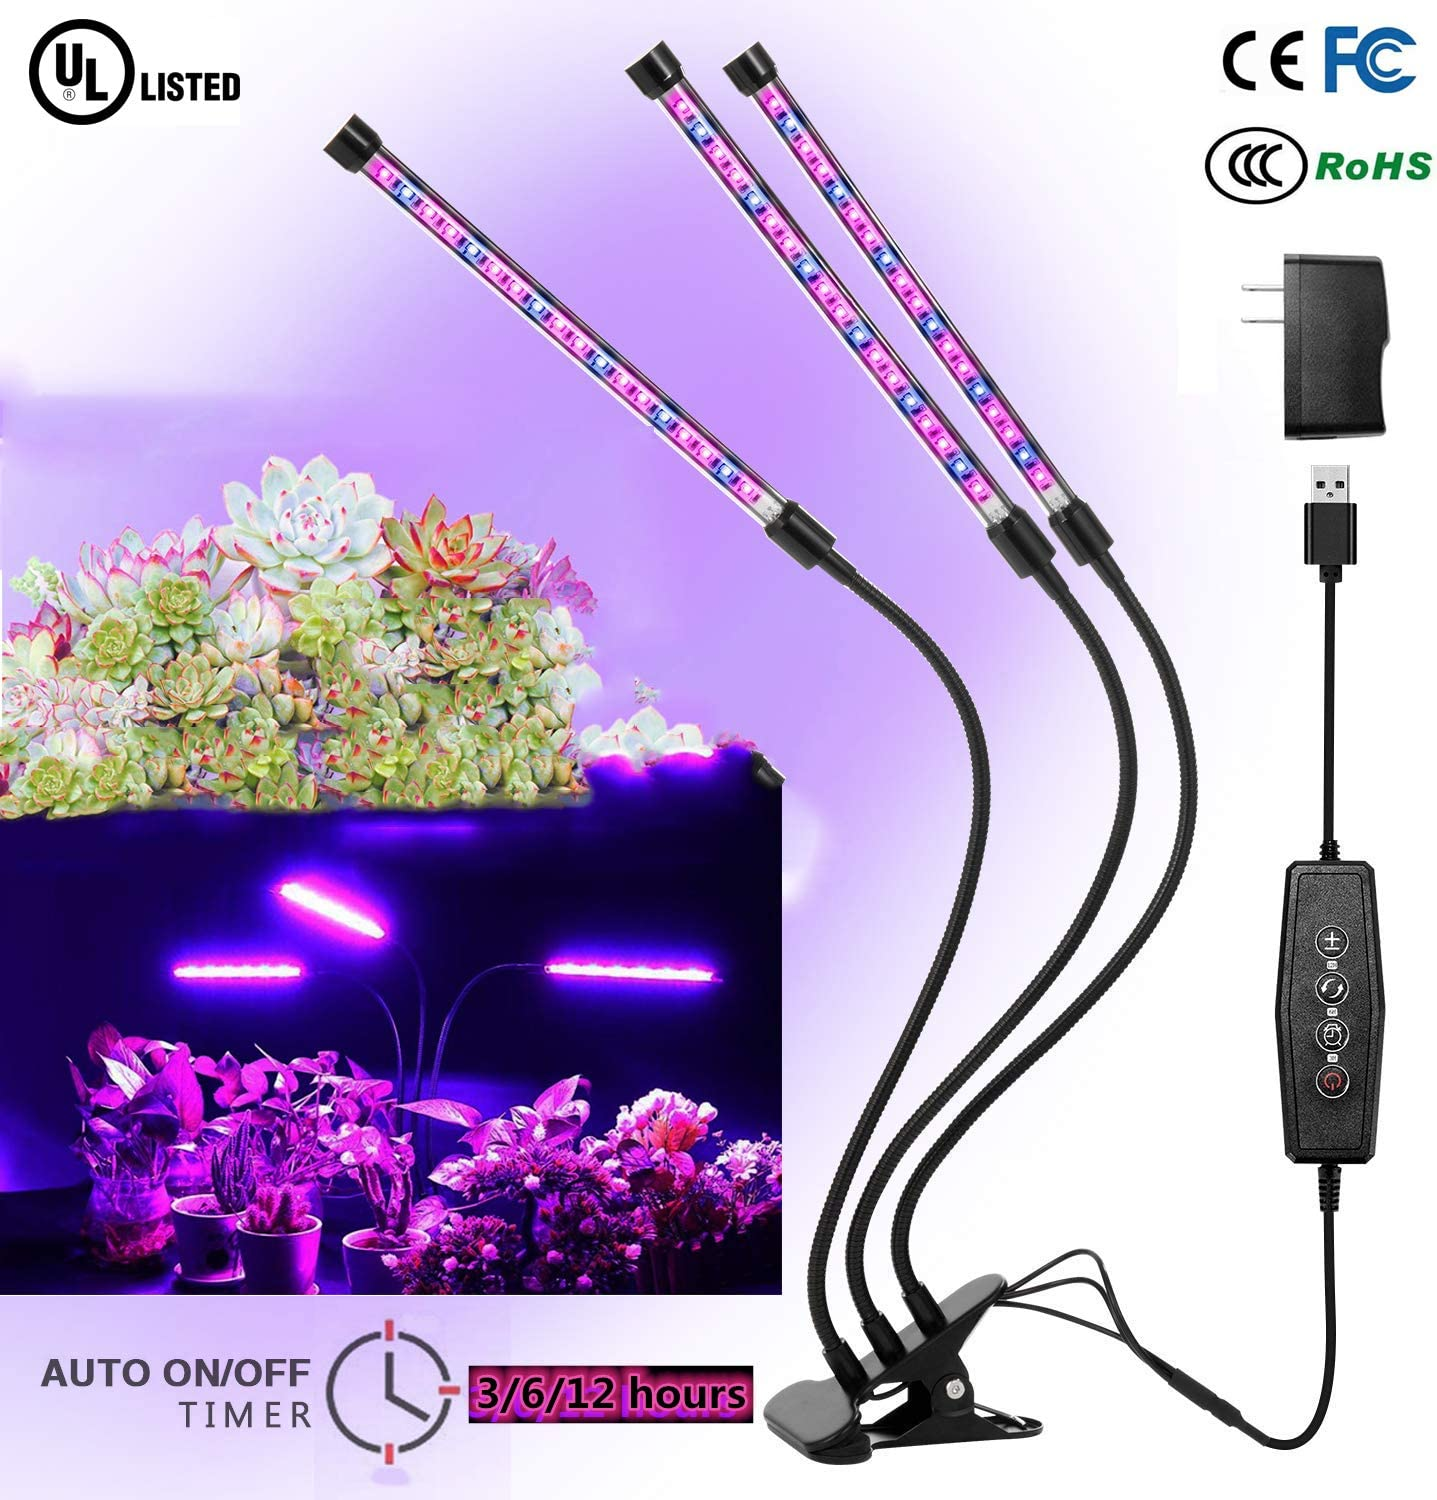 Grow Light, Grow Lights for Indoor Plants, 1000W 1500 LED Bulbs Timming Plant Grow Lamp with Red, Blue Spectrum, 3 6 12H Timer, 50-Head Divide Control Adjustable Gooseneck